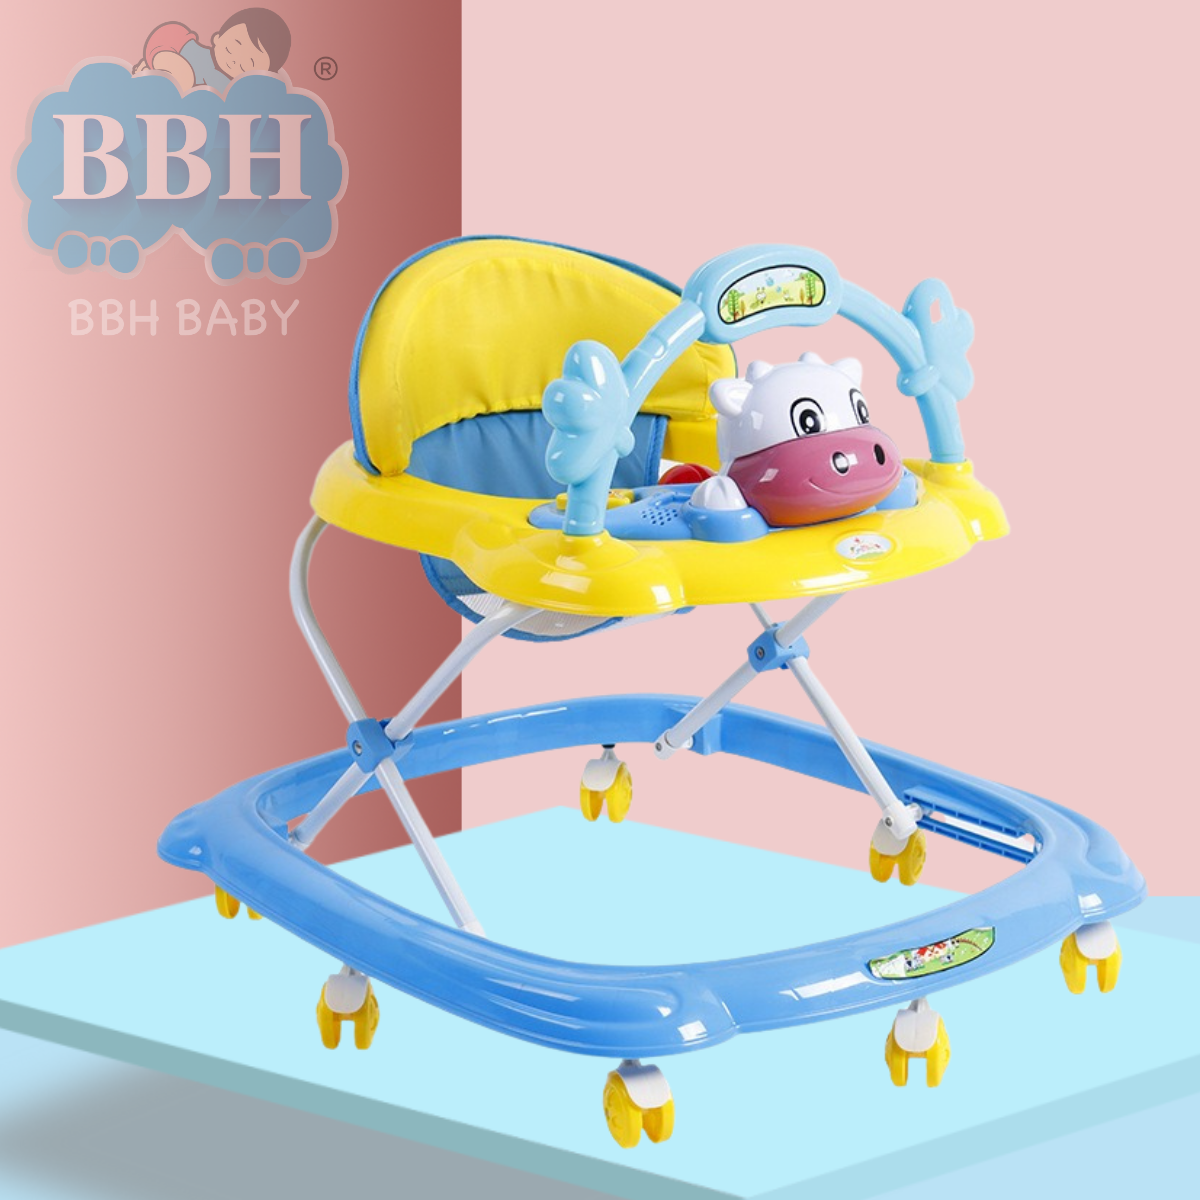 BBH 350 BABY WALKER WITH ENGLISH SONG AND FREE STOPPER